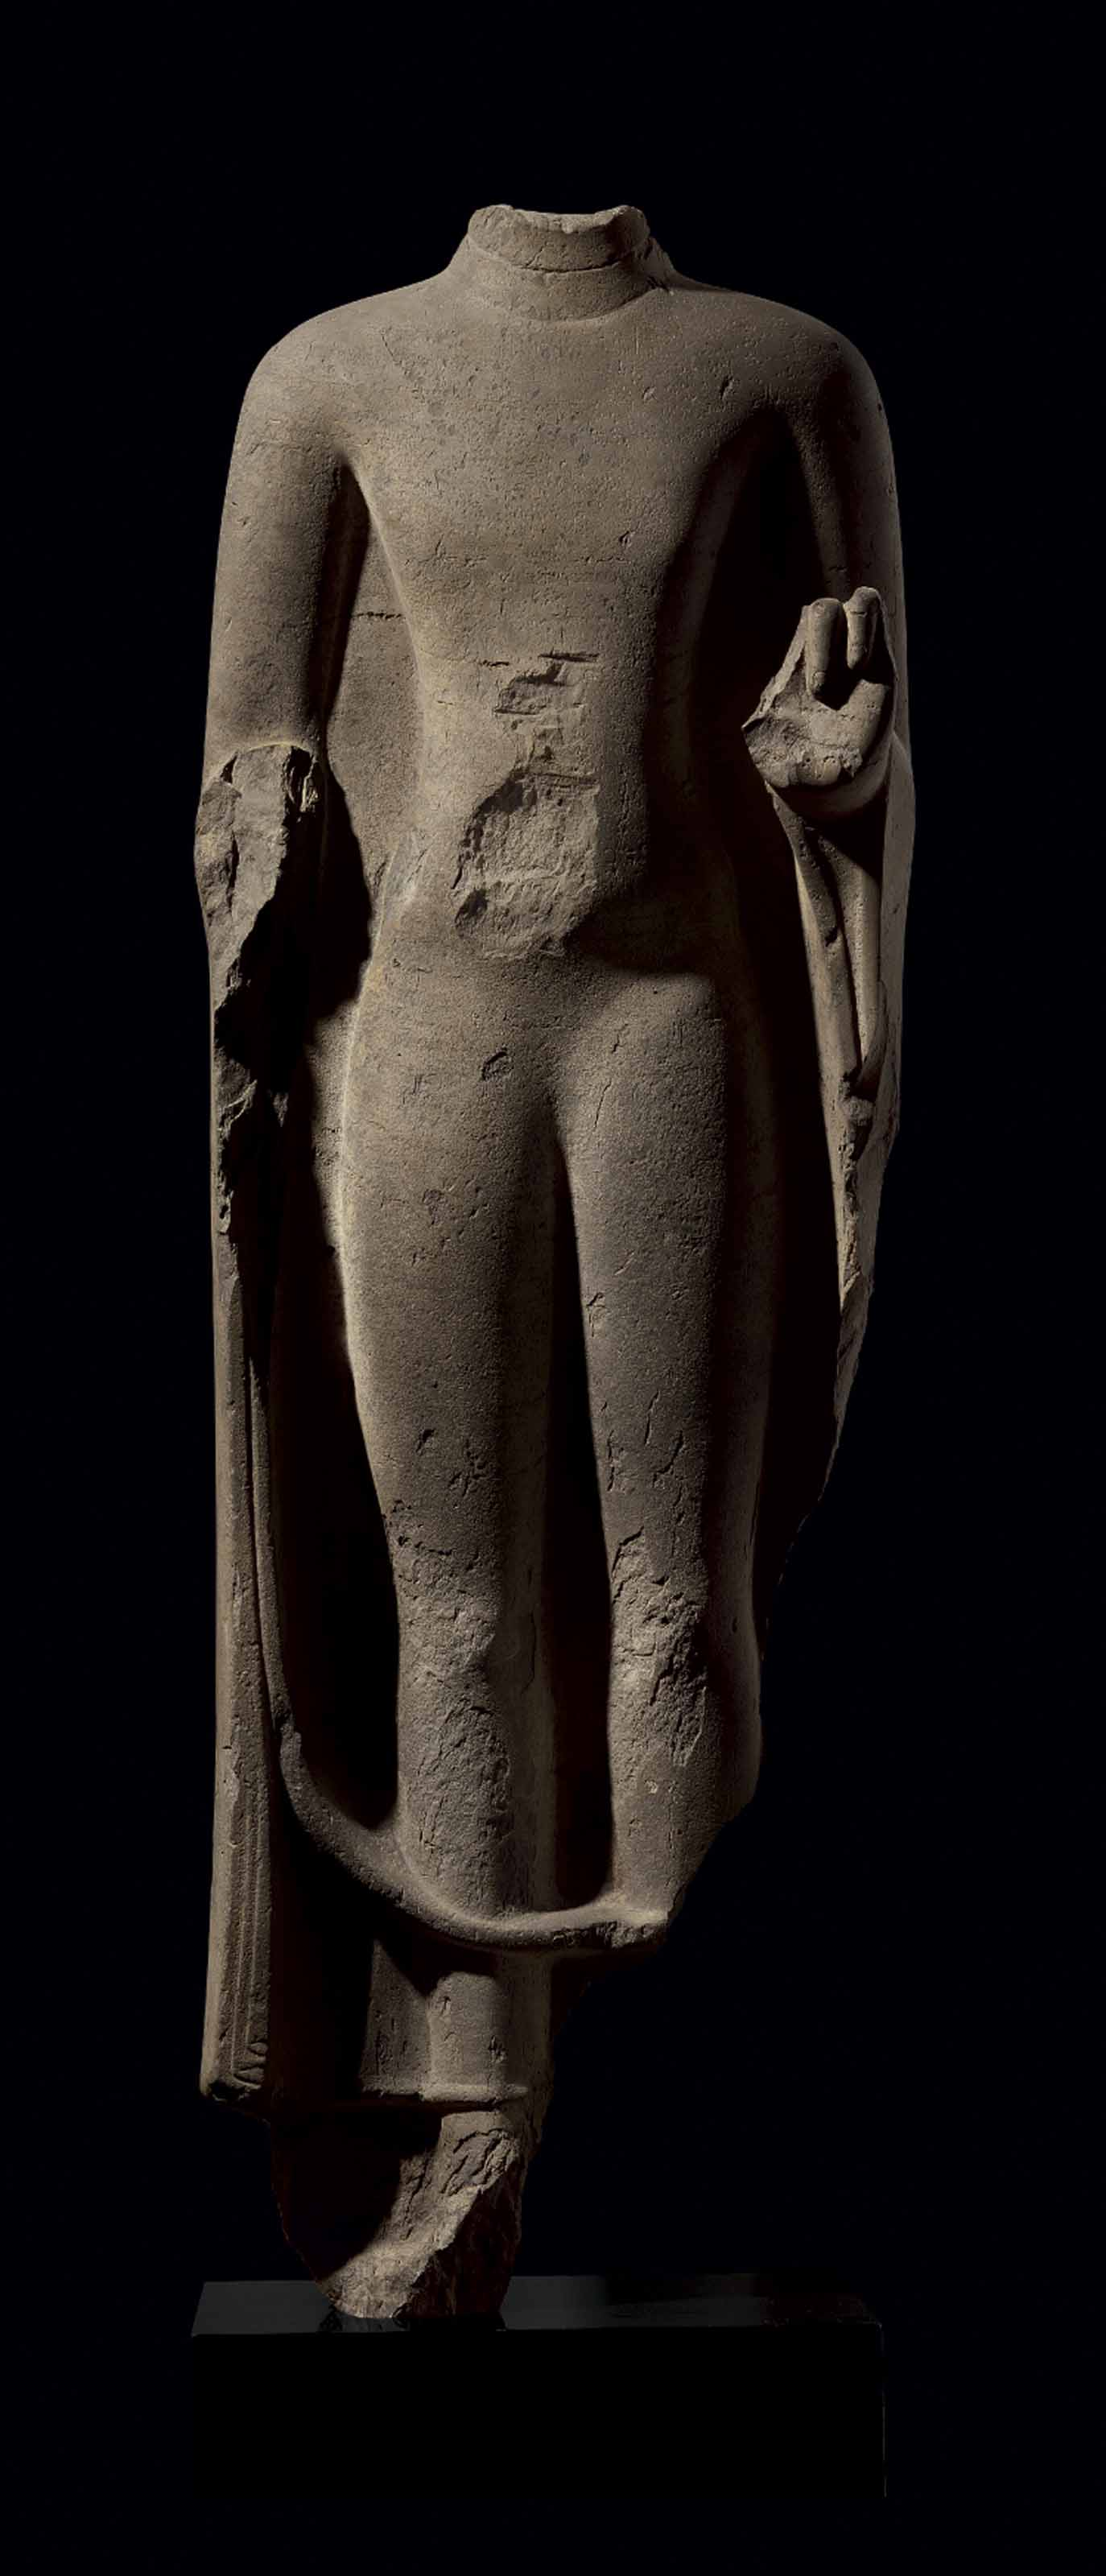 AN IMPORTANT STONE FIGURE OF B